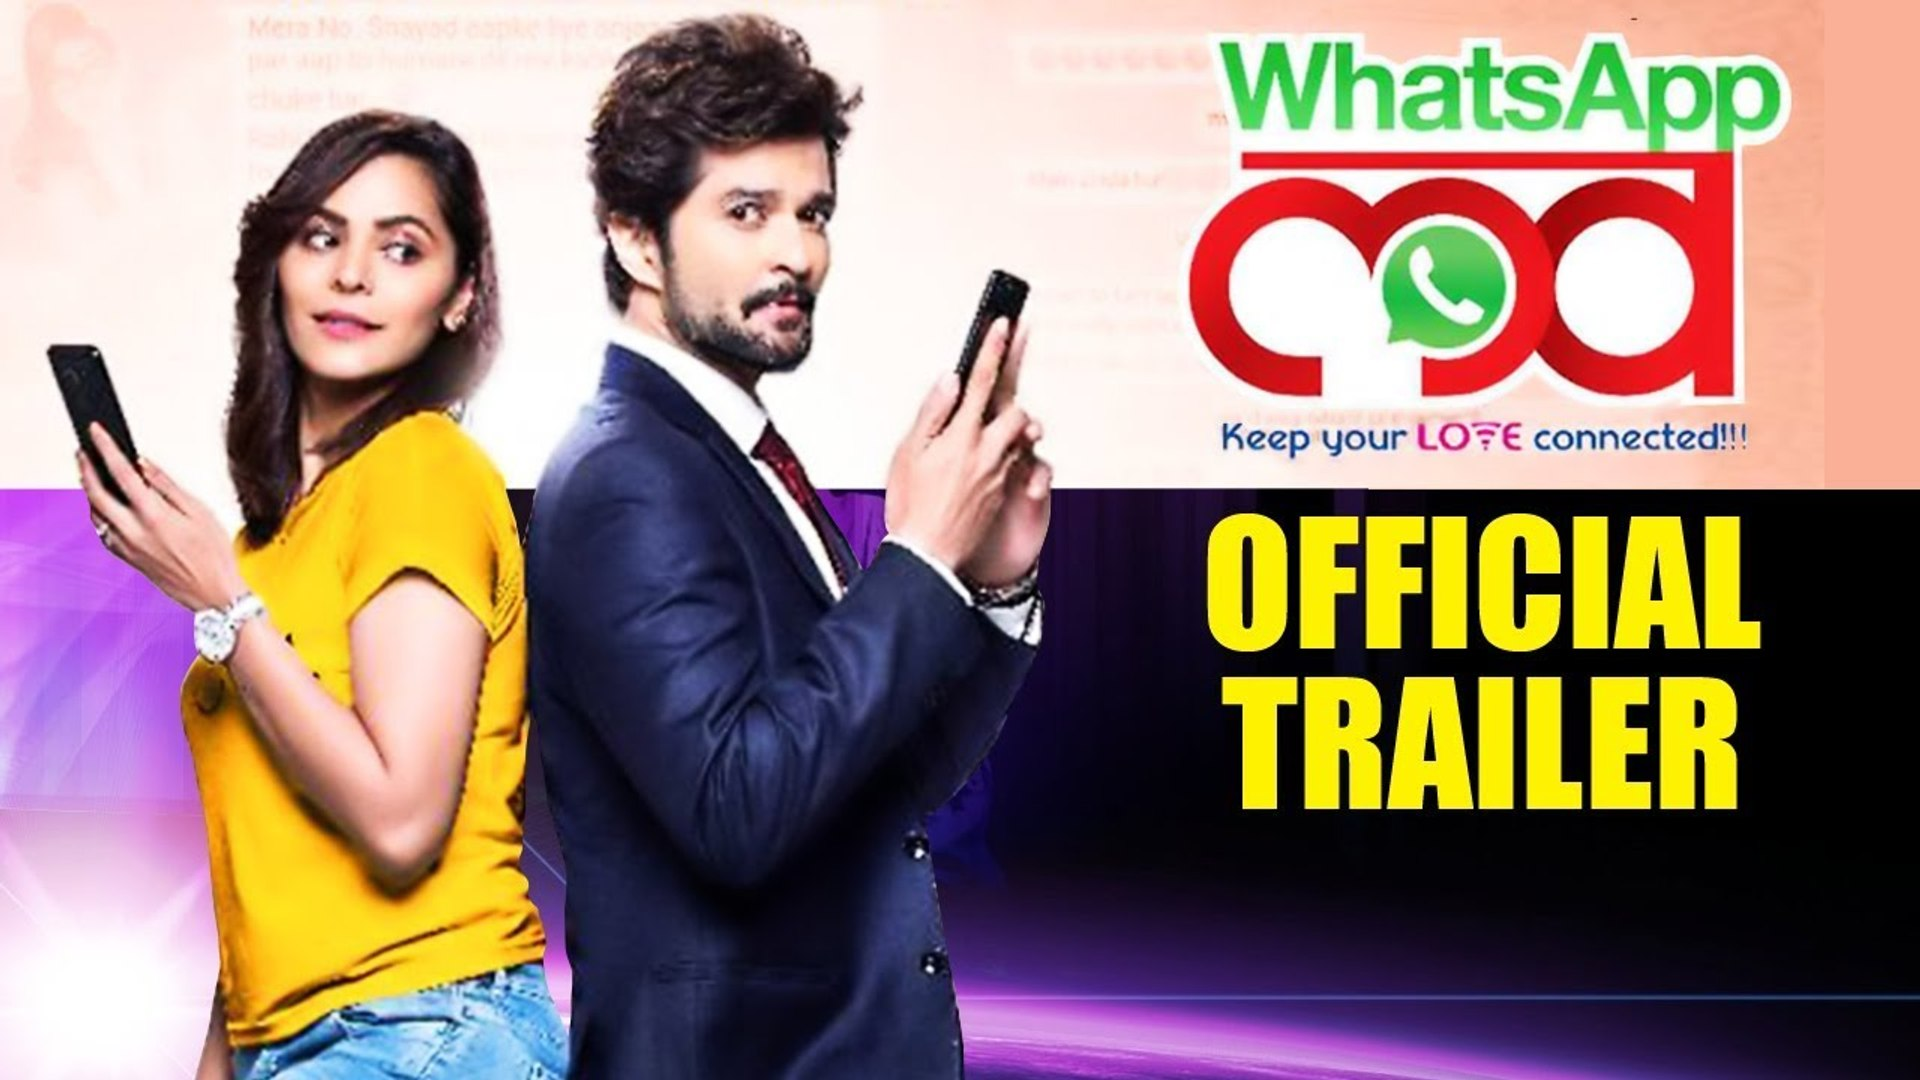 WhatsApp Love | Official Trailer | Raqesh Bapat | Anuja Sathe | Sareh Far | Marathi Movie 2019